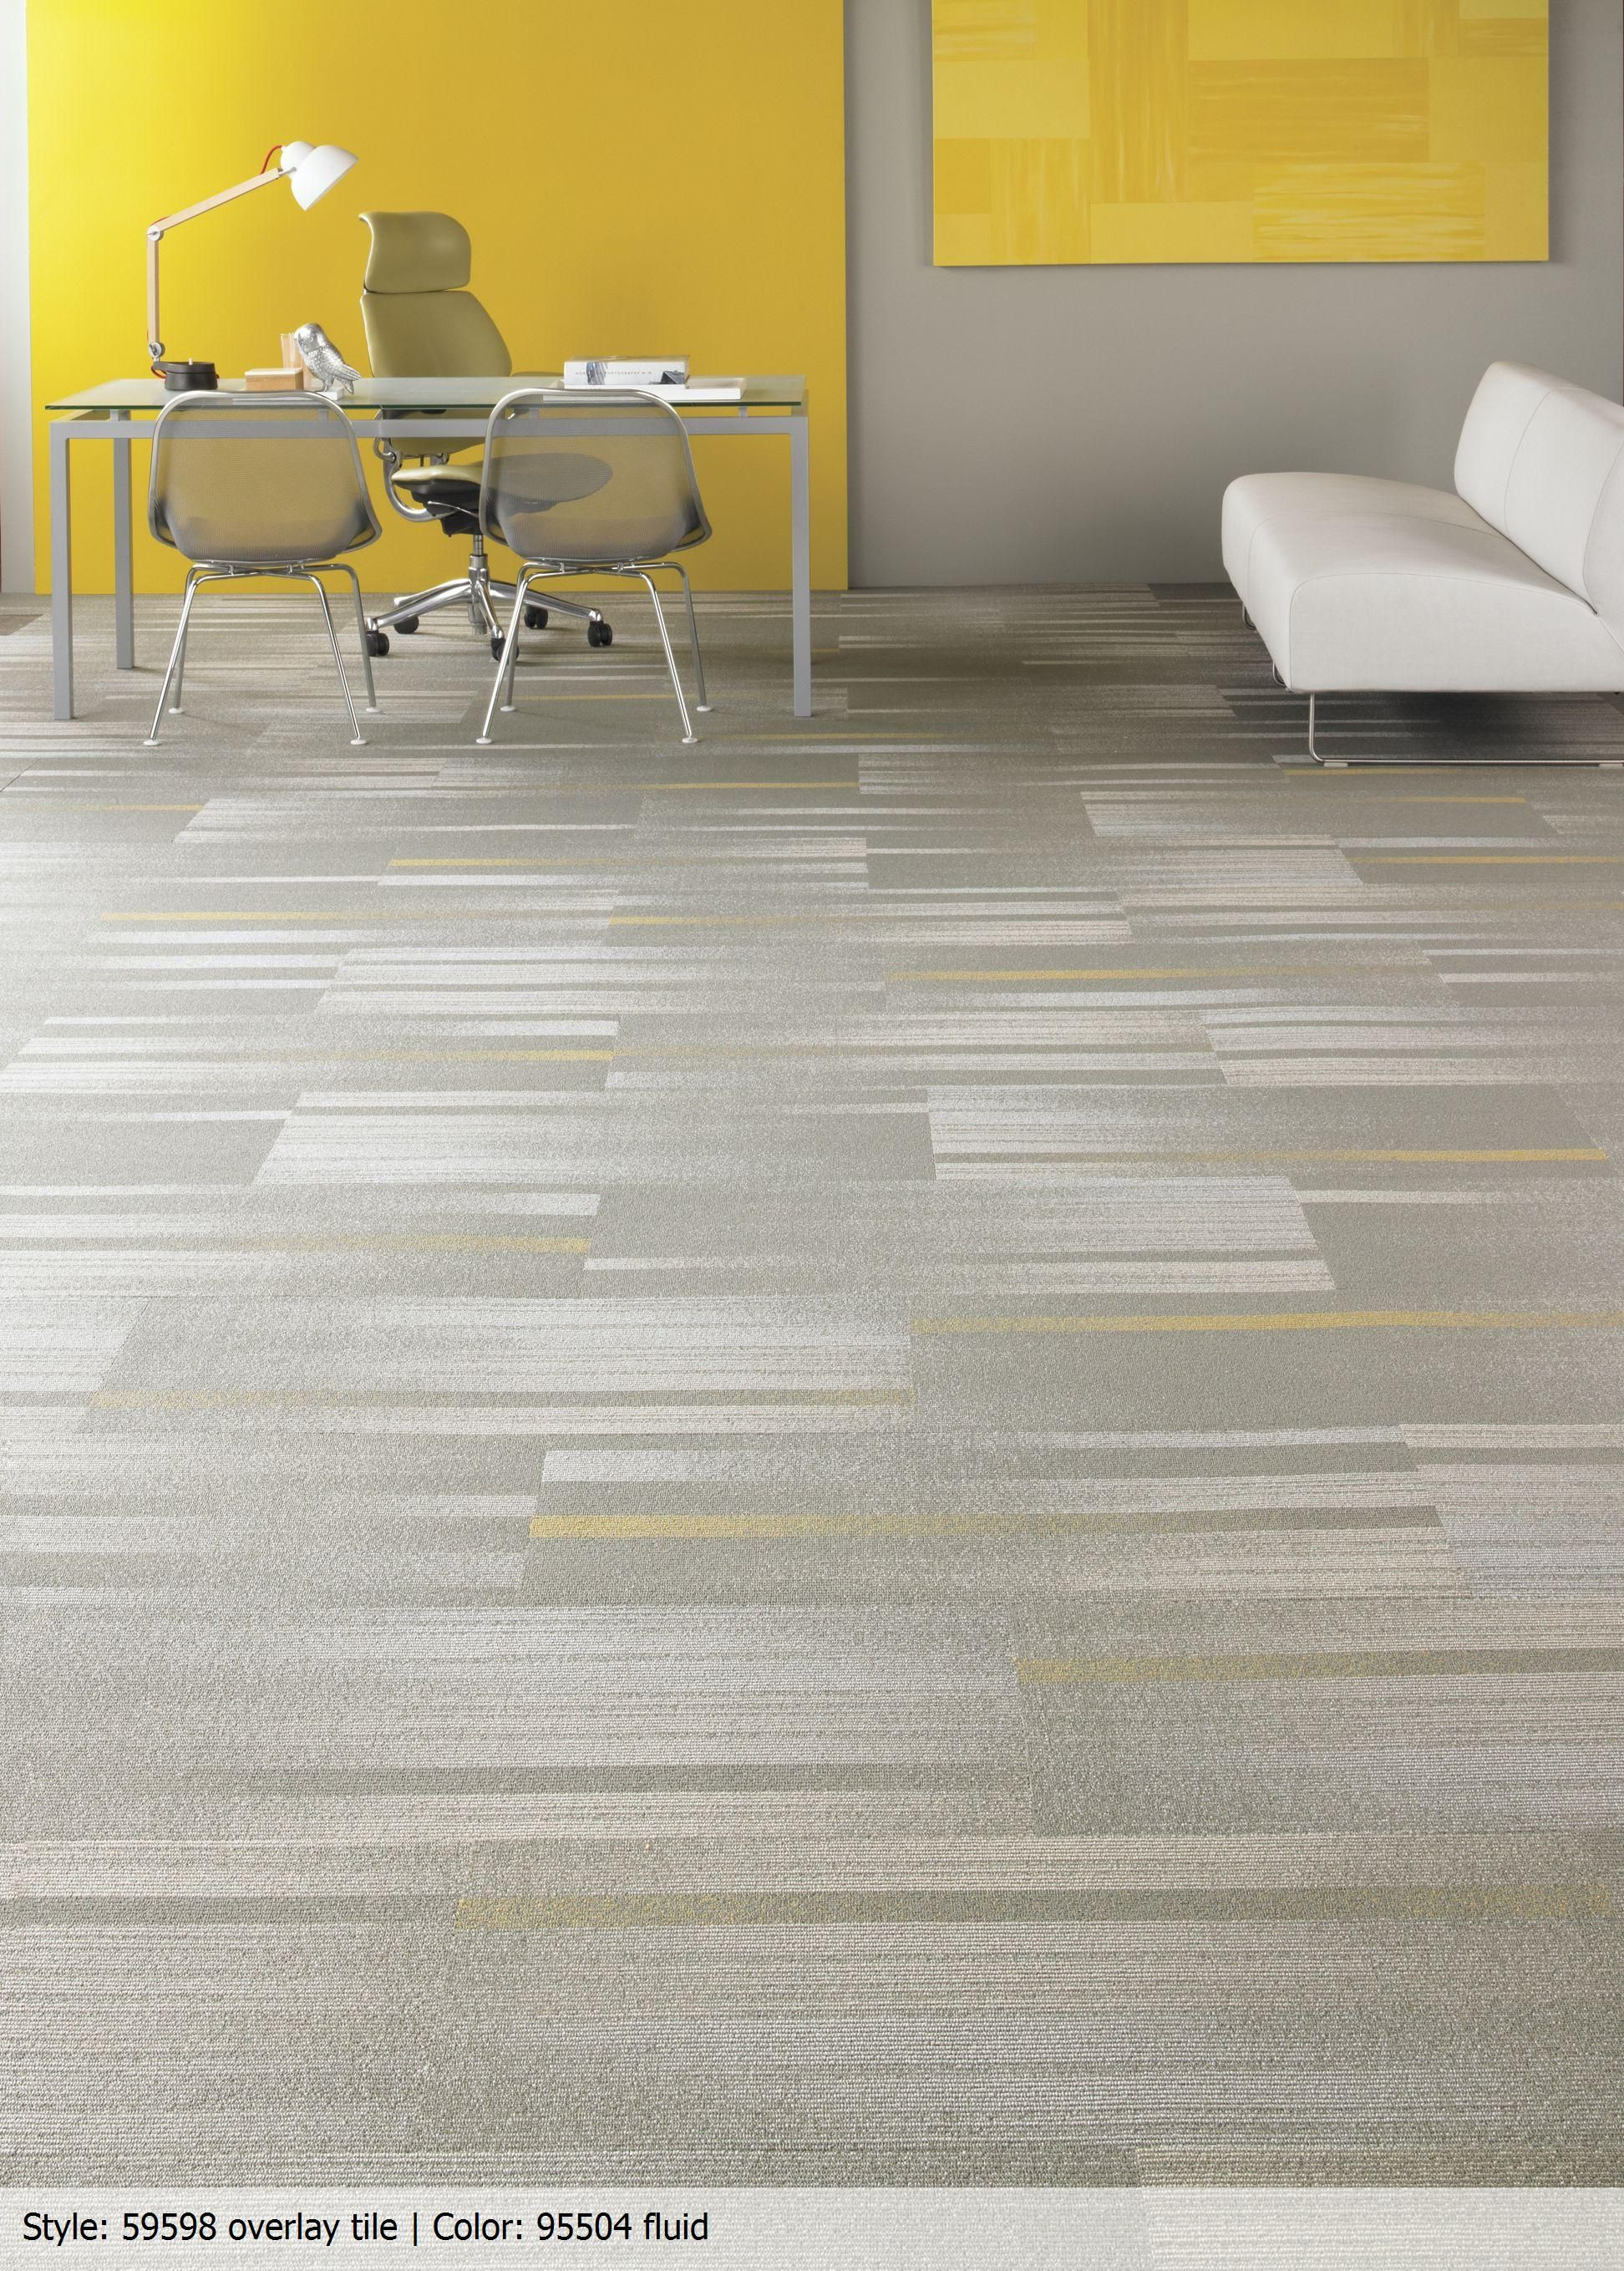 Shaw EcoWorx Modular Tile Carpet with EcoSolution Q Yarn | Products | GECA